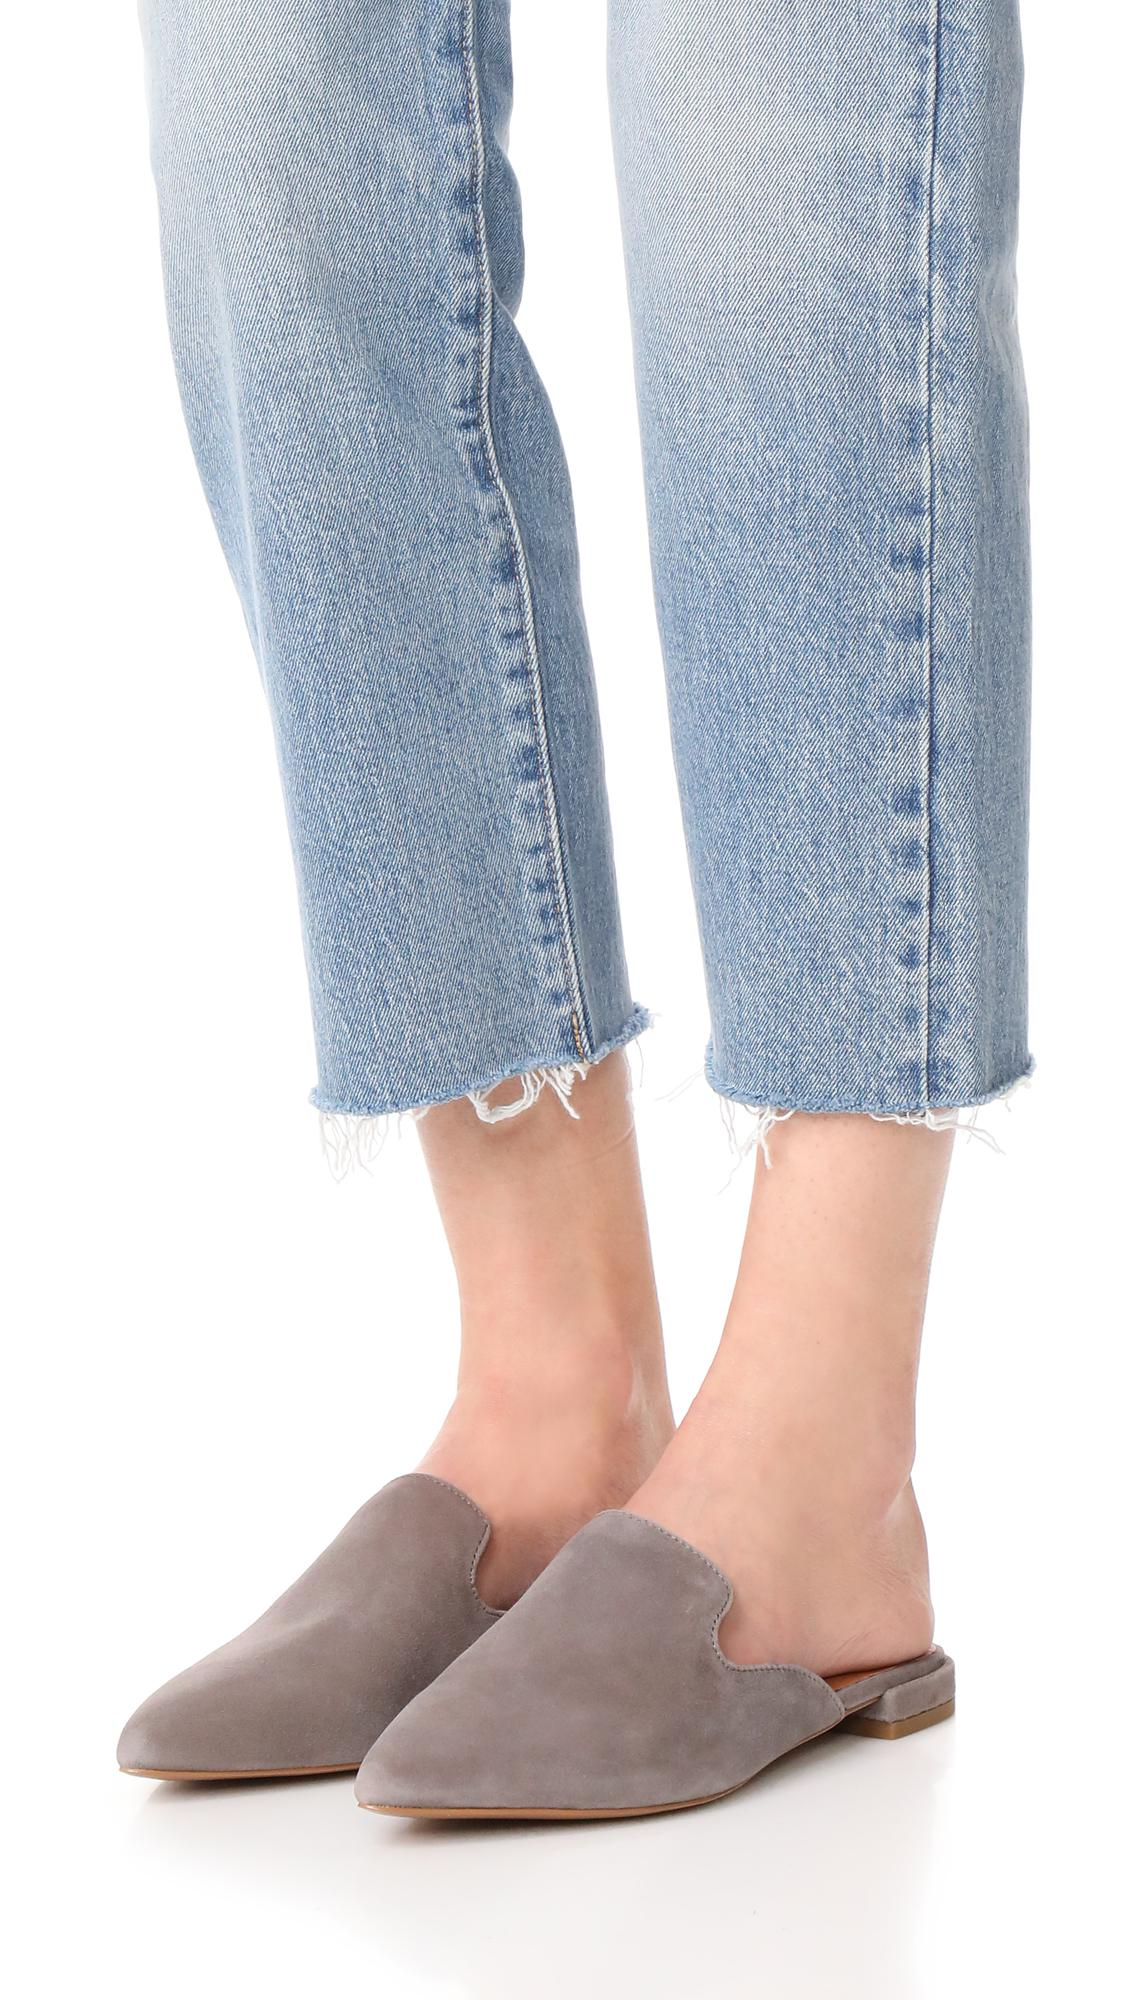 616550a5a92 Lyst - Steven by Steve Madden Valent Mules in Gray